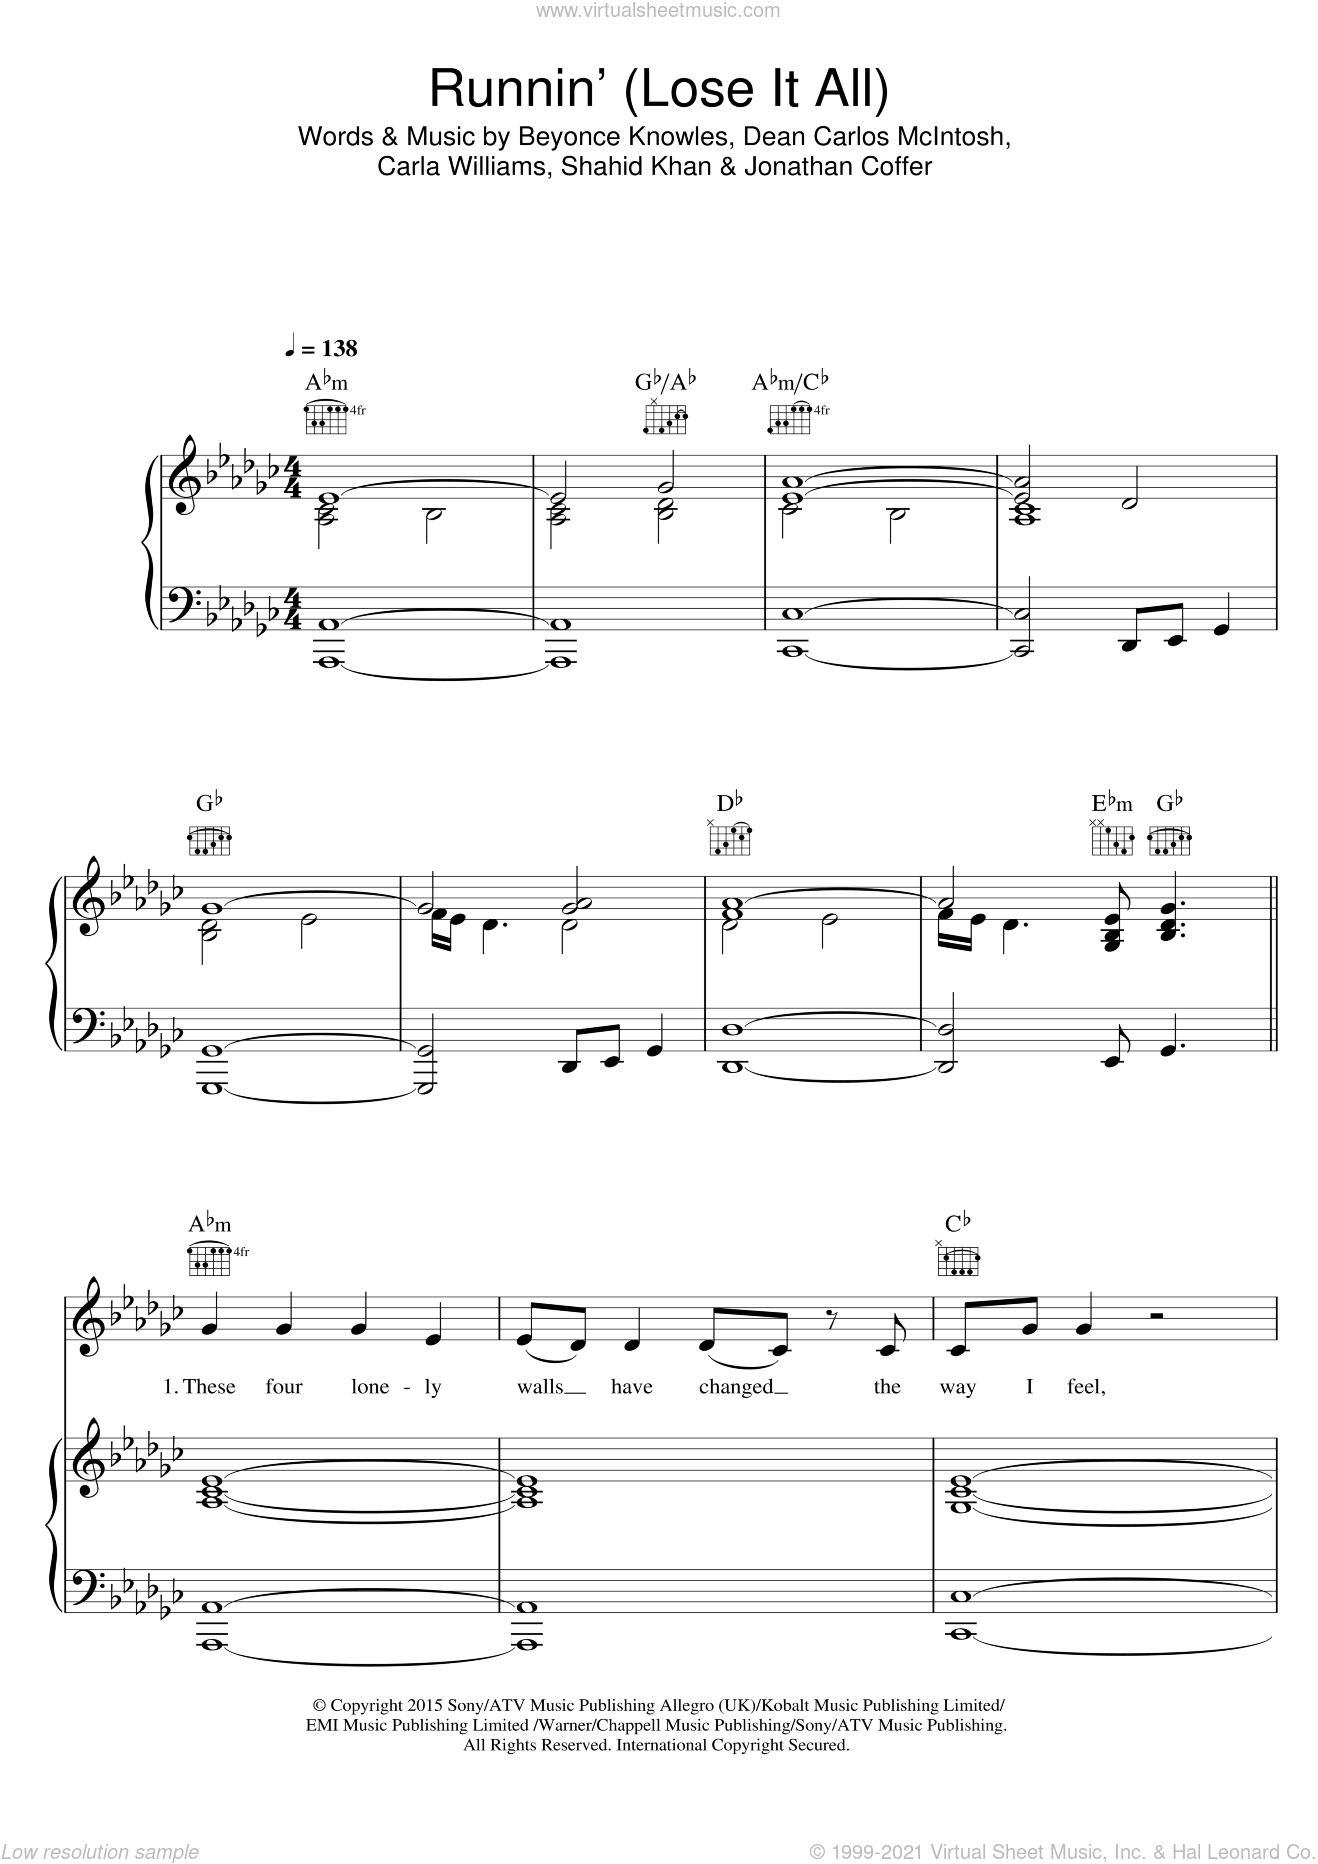 Runnin' (Lose It All) (featuring Beyonce and Arrow Benjamin) sheet music for voice, piano or guitar by Naughty Boy, Arrow Benjamin, Beyonce, Carla Williams, Dean Carlos McIntosh, Jonathan Coffer and Shahid Khan, intermediate skill level